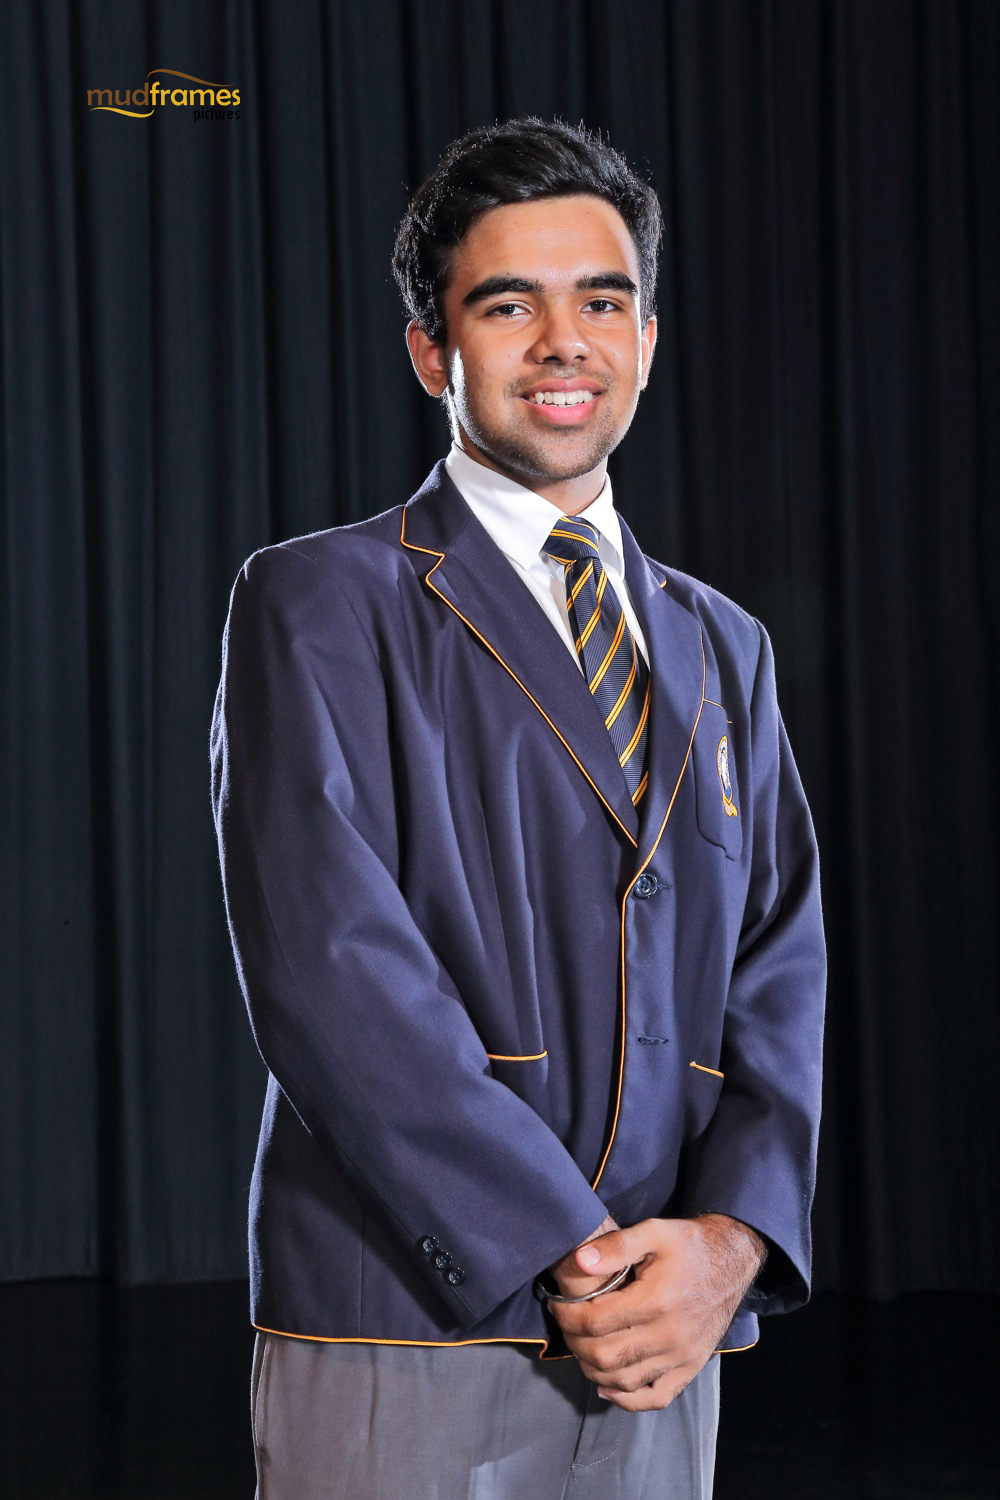 The British International School Senior Student Profile Shot